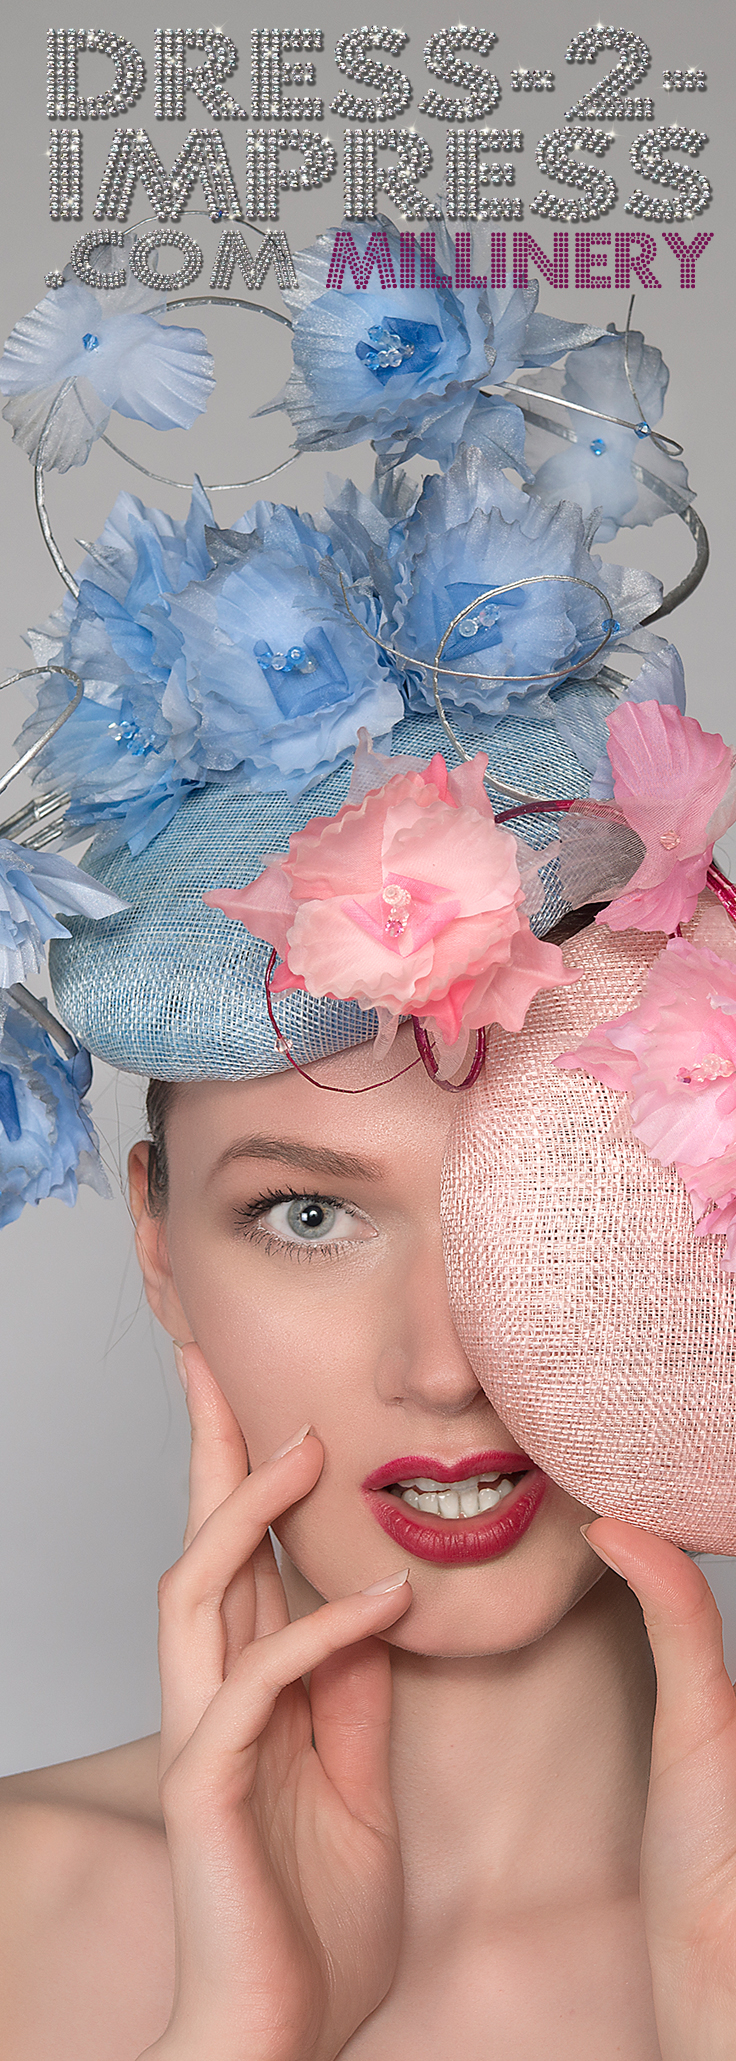 Handmade Designer Hats and Headpieces for Royal Ascot, Kentucky Derby, Dubai World Cup, Melbourne Cup and other Races, Mother of the Bride, or Weddings. Couture Millinery. Amazing Hats. #millinery #bighats #designerwear #fashion #fashionista #royalascot #kentuckyderby #racingfashion #fashiononthefield #hats #fascinators #fashionaddict